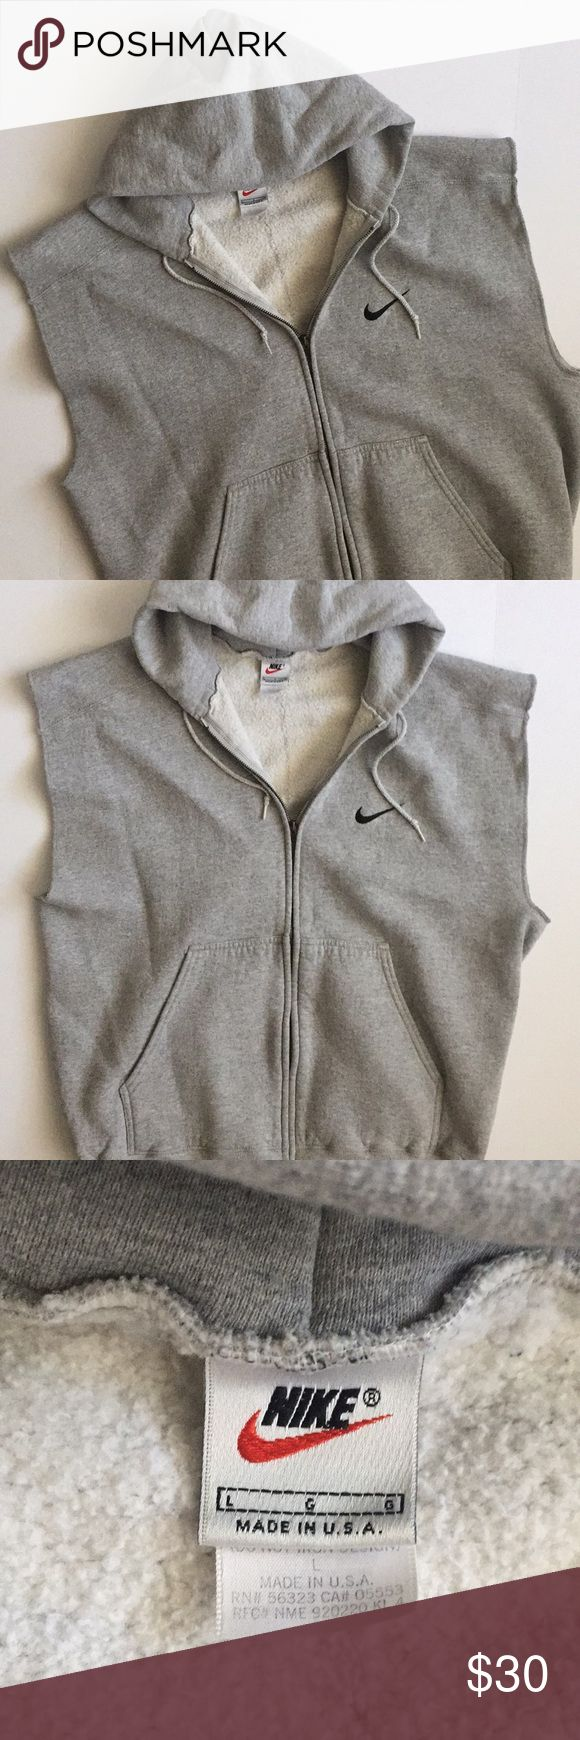 """Gray Nike sweatsuit hoodie with cutoff sleeves Light gray sweatshirt with drawstring hoodie, zip up front, front pockets, and cutoff, oversized sleeves. Nike embroidered logo on chest. Could be unisex!   85% cotton 15% polyester   Measurements are approximate:  Armpit to armpit- 25.5"""" Length (shoulder to hem)- 26-26.5"""" Nike Men's Large (L) Nike Shirts Sweatshirts & Hoodies"""